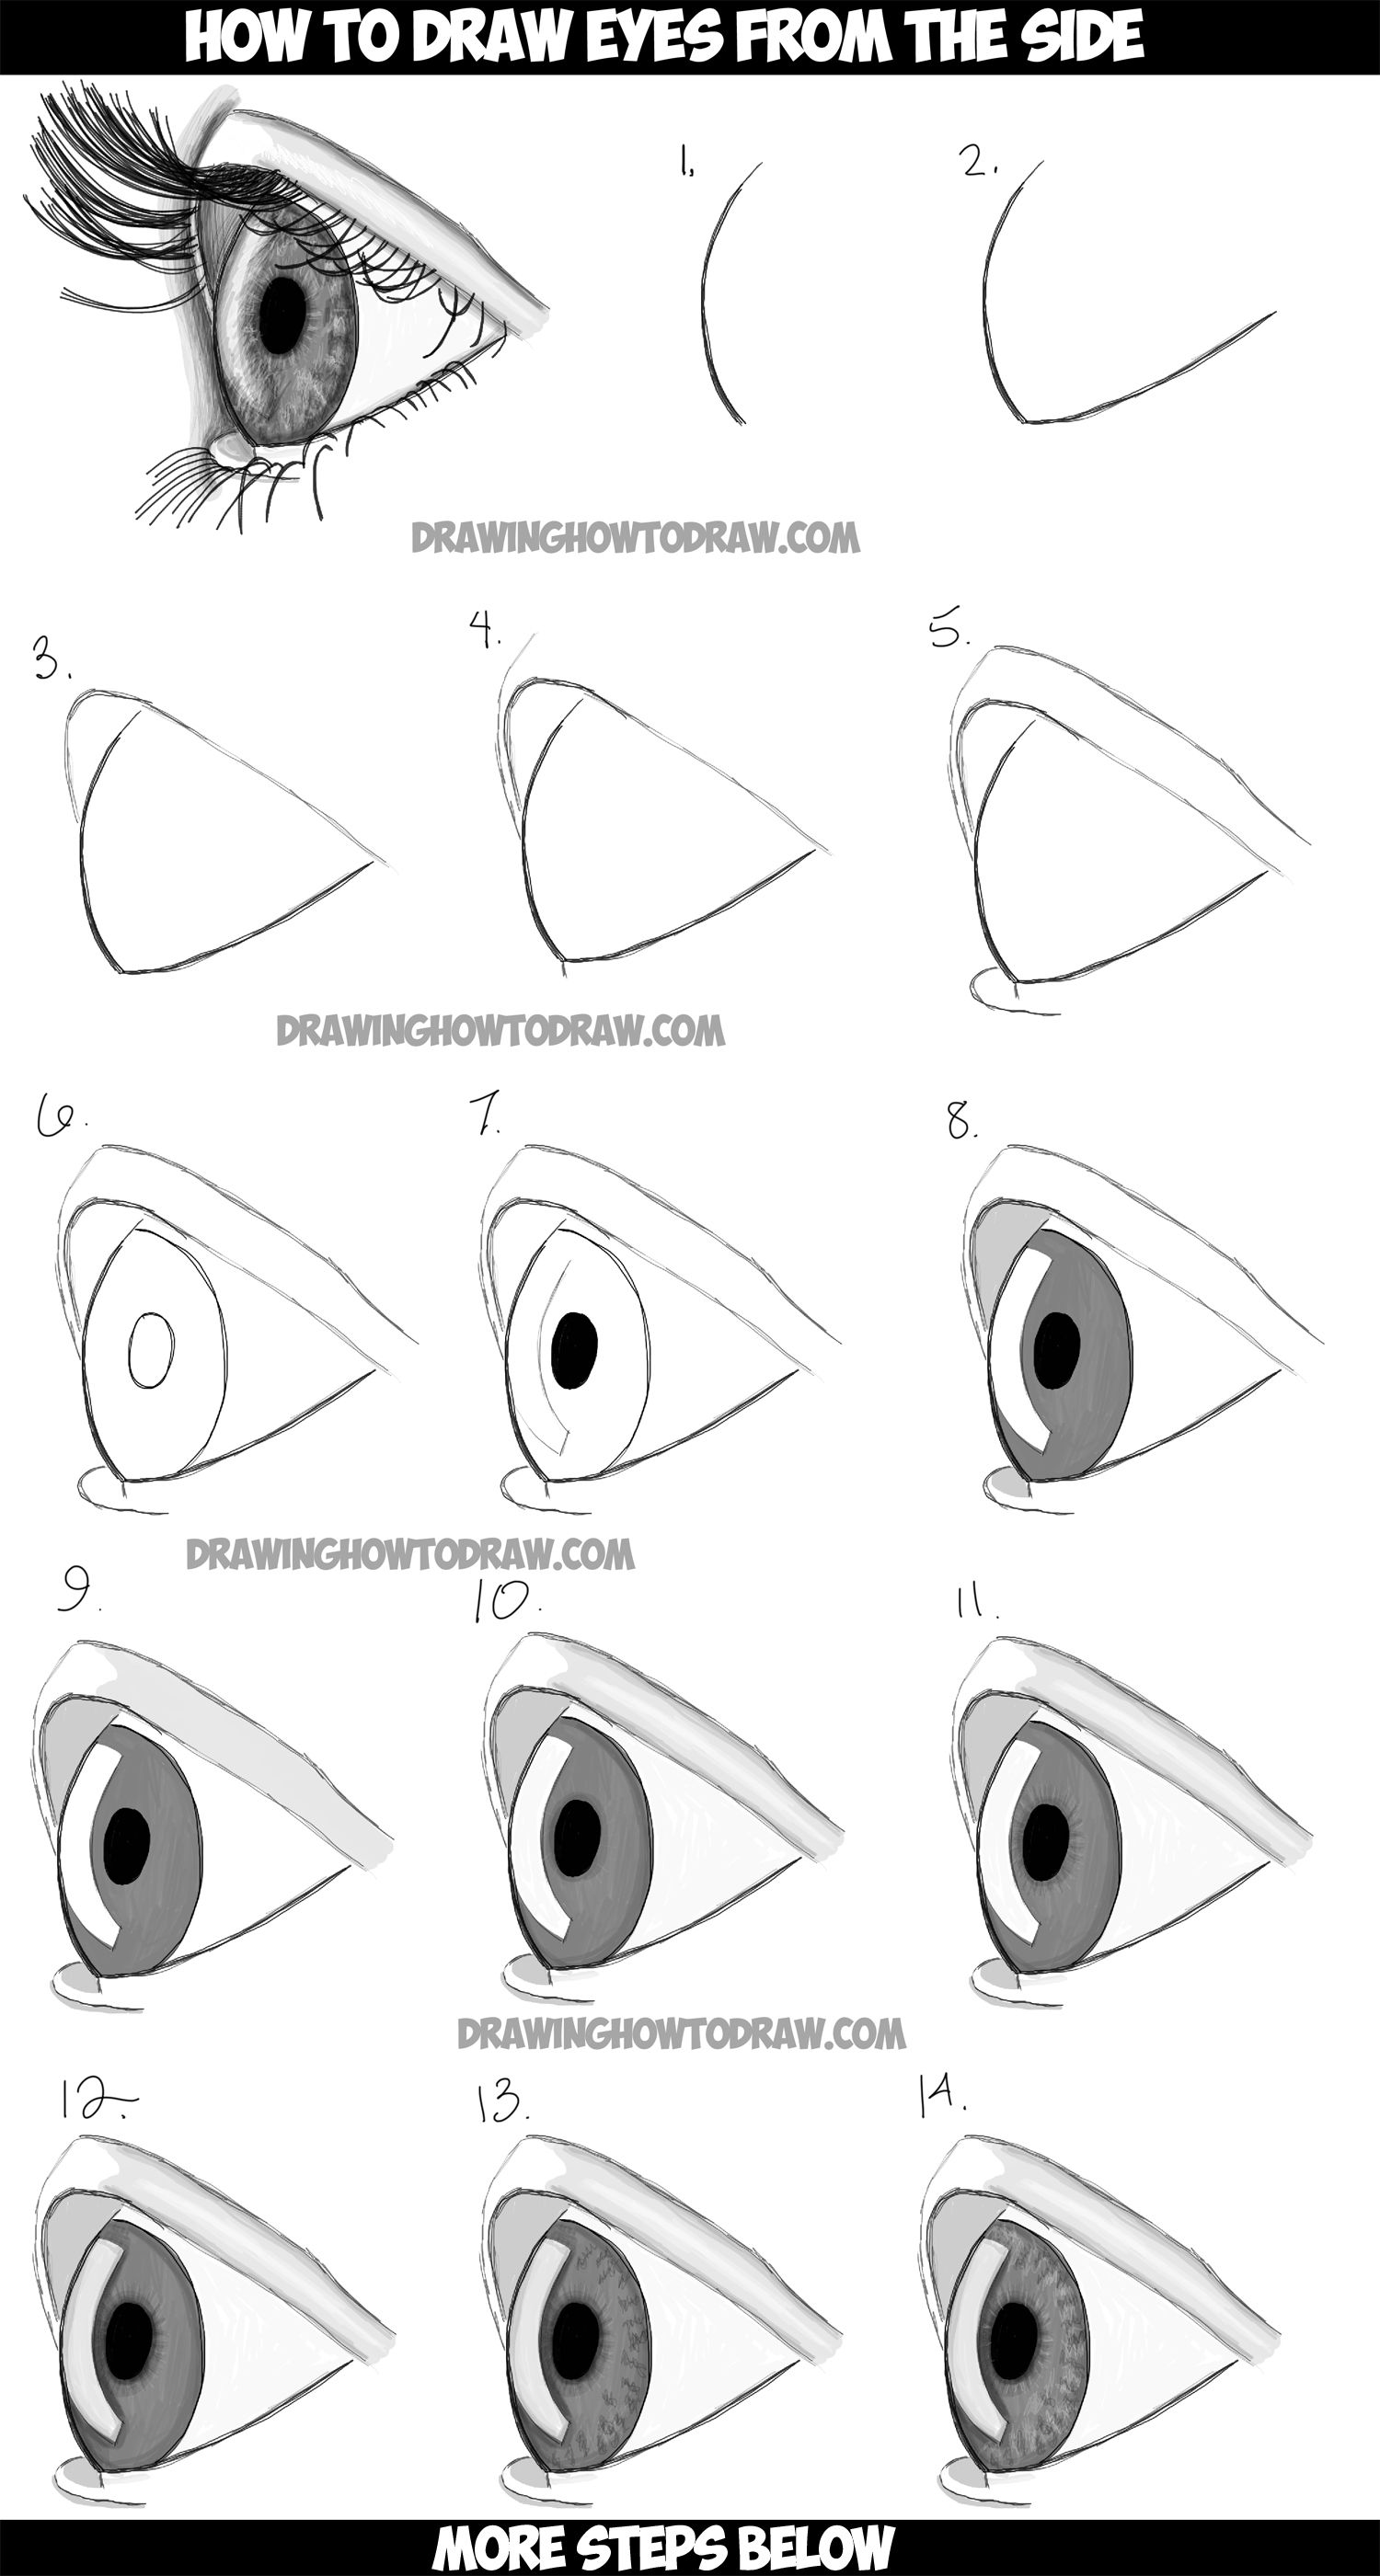 Scribble Eyes Drawing : How to draw realistic eyes from the side profile view